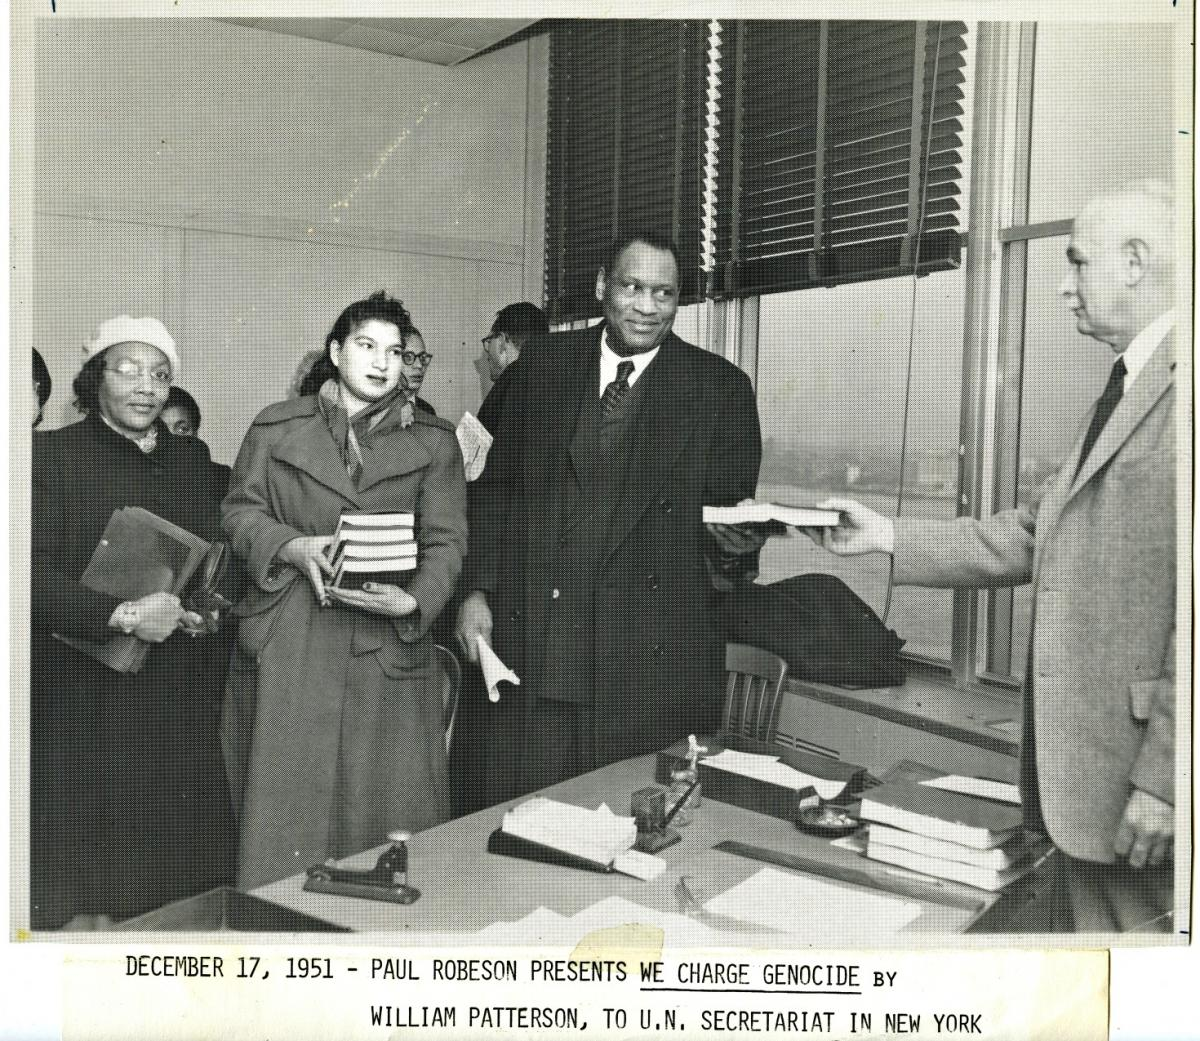 Paul Robeson and the Civil Rights Congress